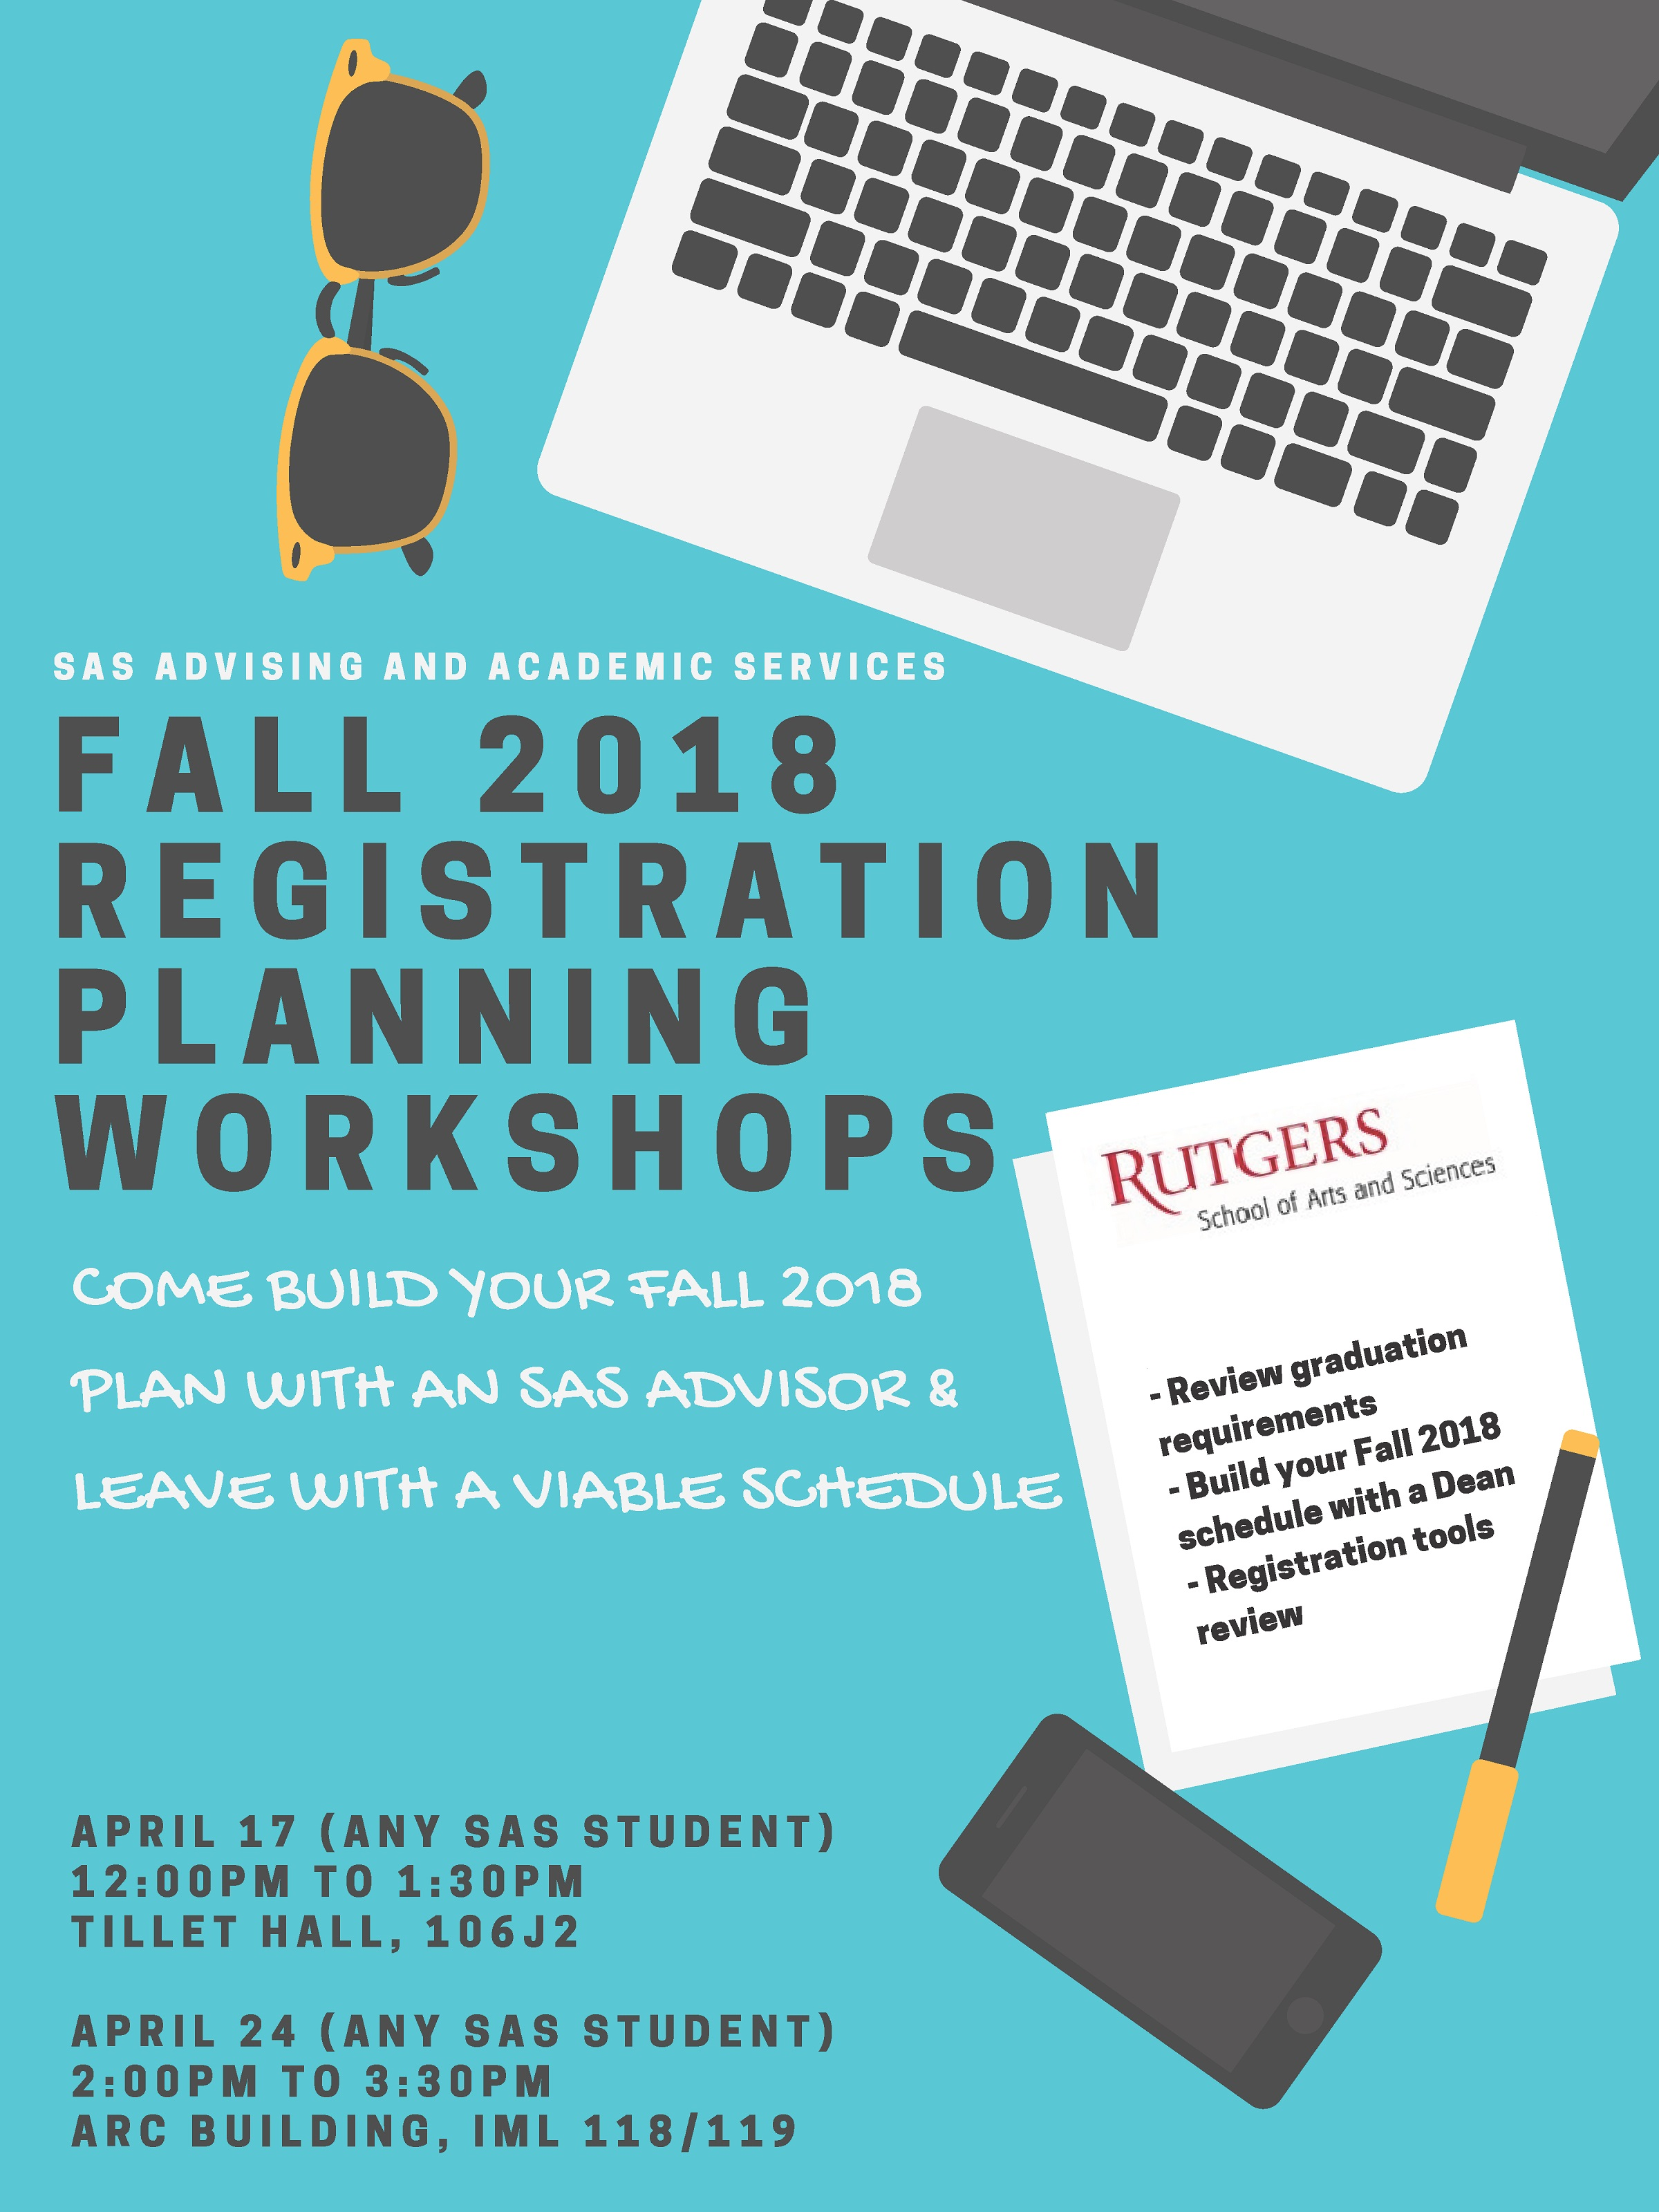 Registration Planning Workshops